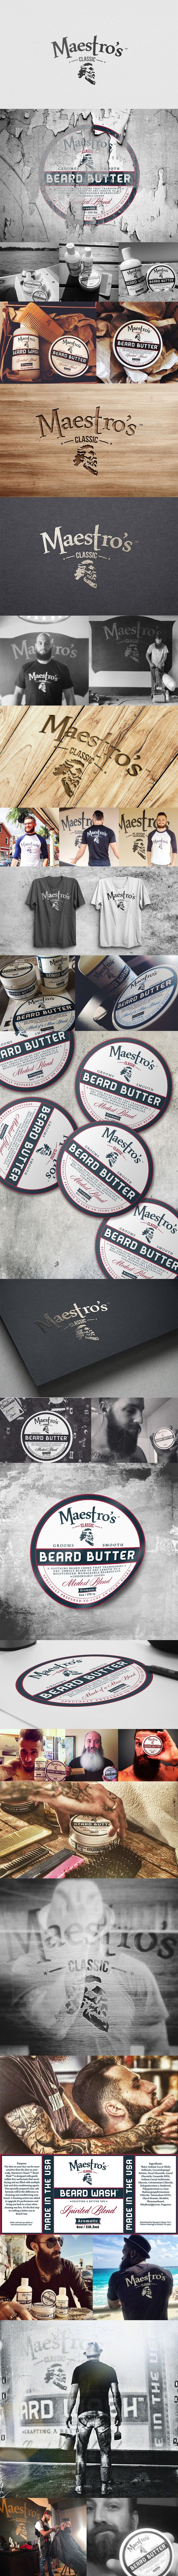 We are tasked to design a logo and product label design for Maestro's Classic a US company that sell beard care products.  #beard #maestrosclassic #beardlover #beardwash #usa #america #graphic #labeldesign #label #typography #logo #logotype #logodesign #brand #branding